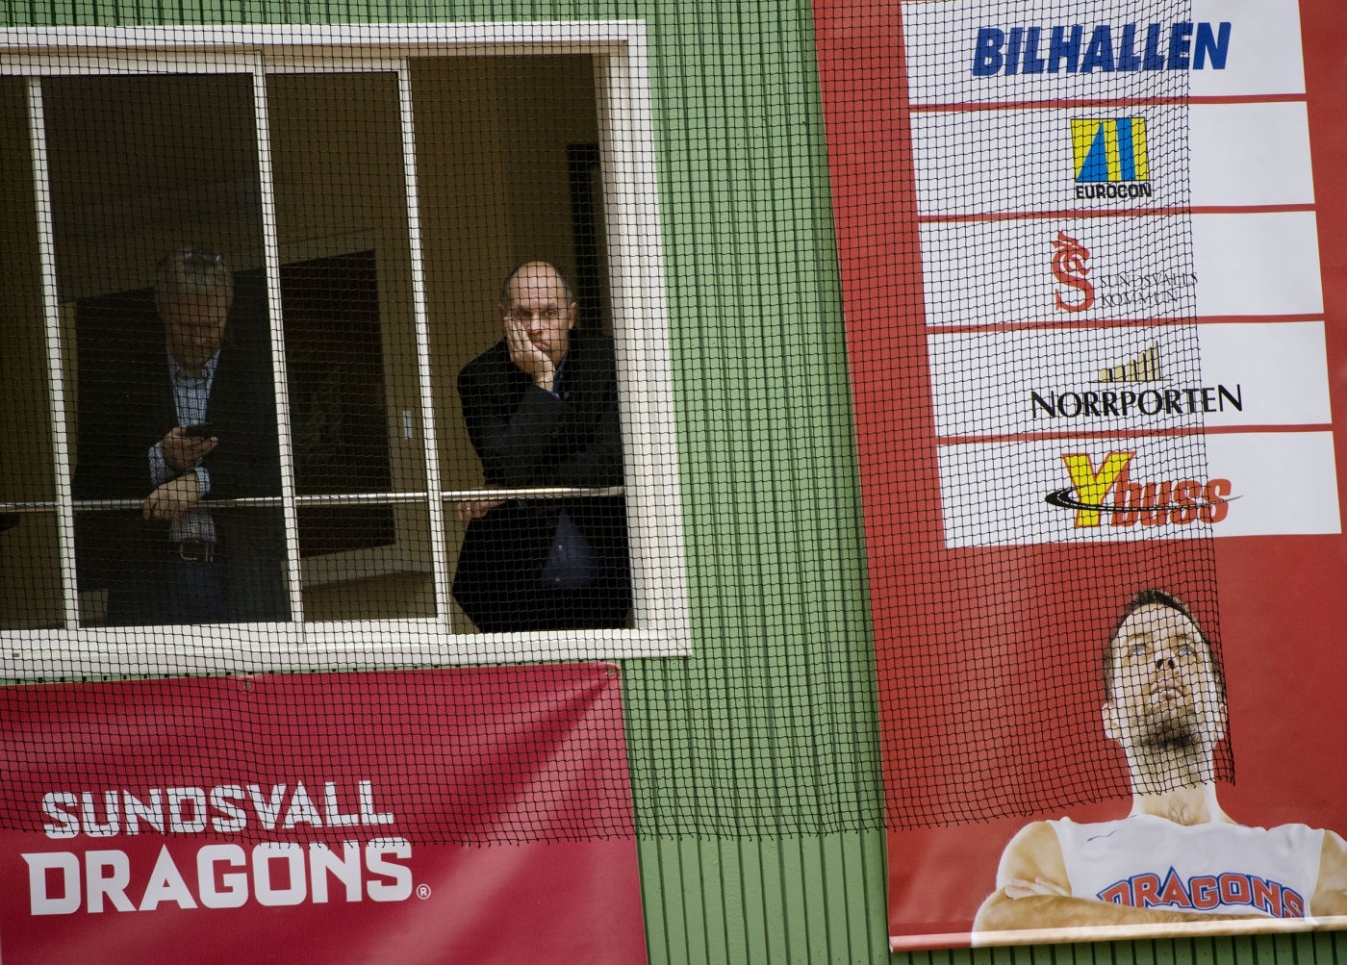 Alex wesby ater till sundsvall dragons 3